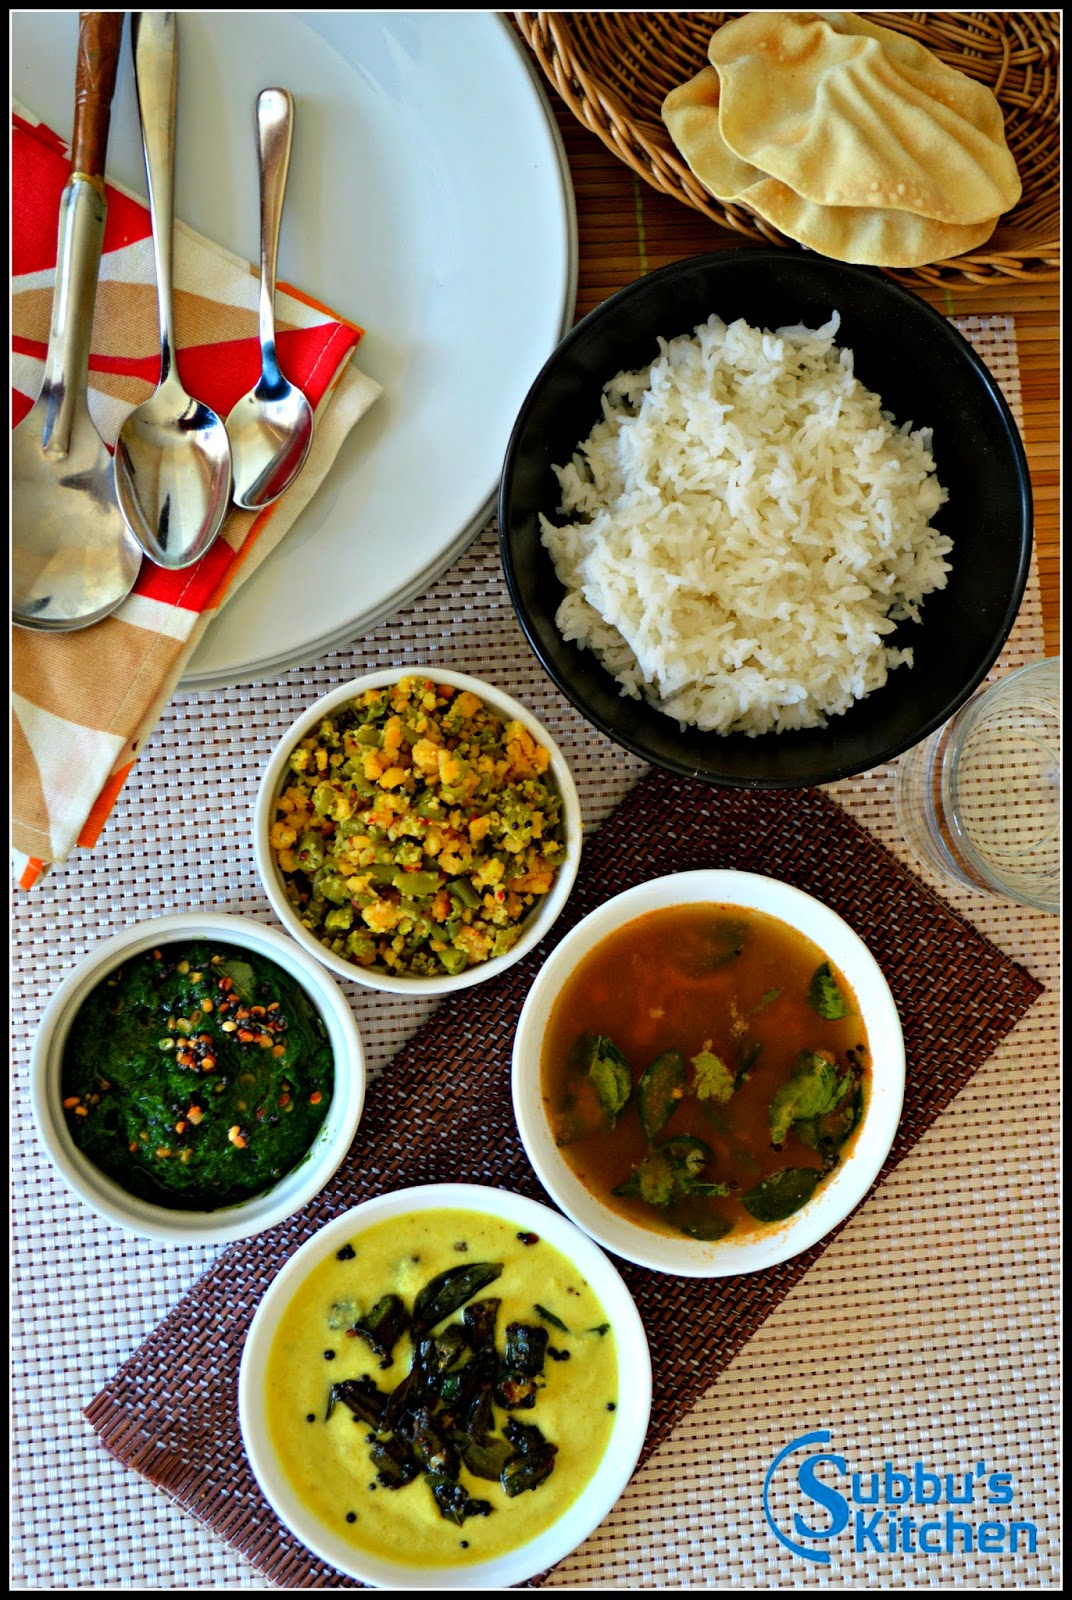 South Indian Lunch Menu 2 - Mor Kuzhambu, Kalyana Rasam, Paruppu Usuli and Keerai Masiyal